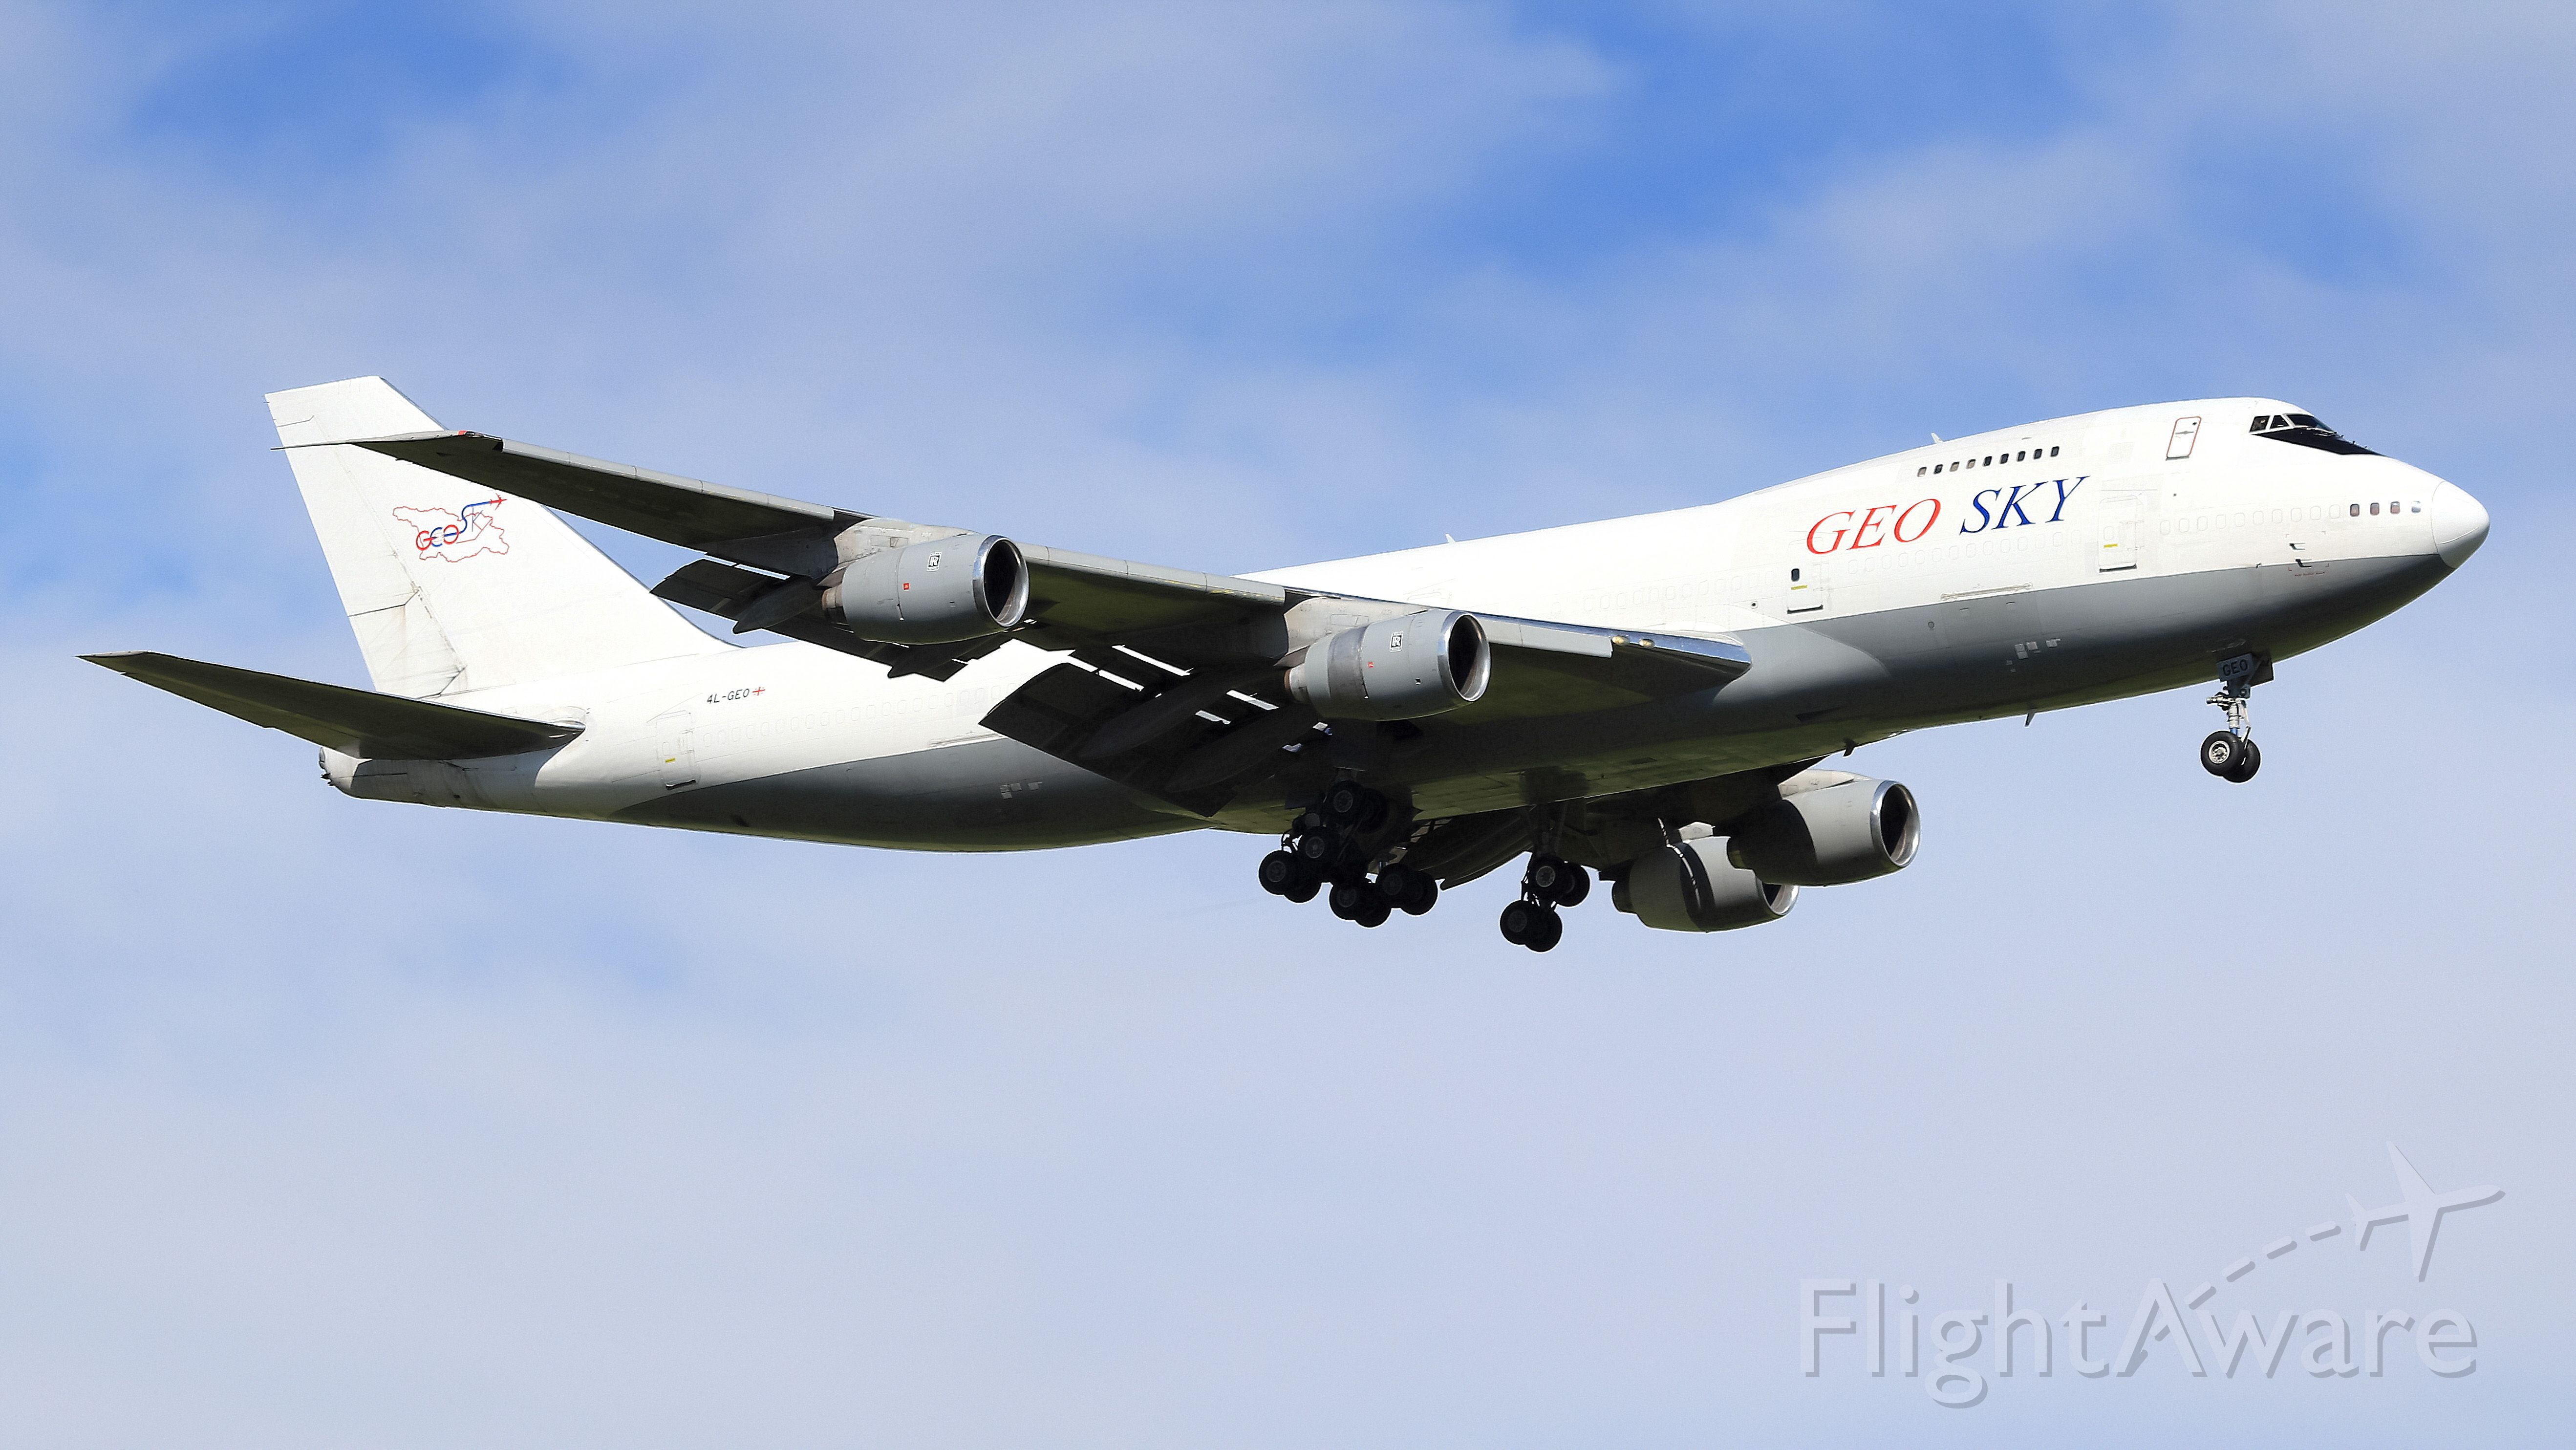 Boeing 747-200 (4L-GEO) - Queen of the sky, at Happy Amsterdam.